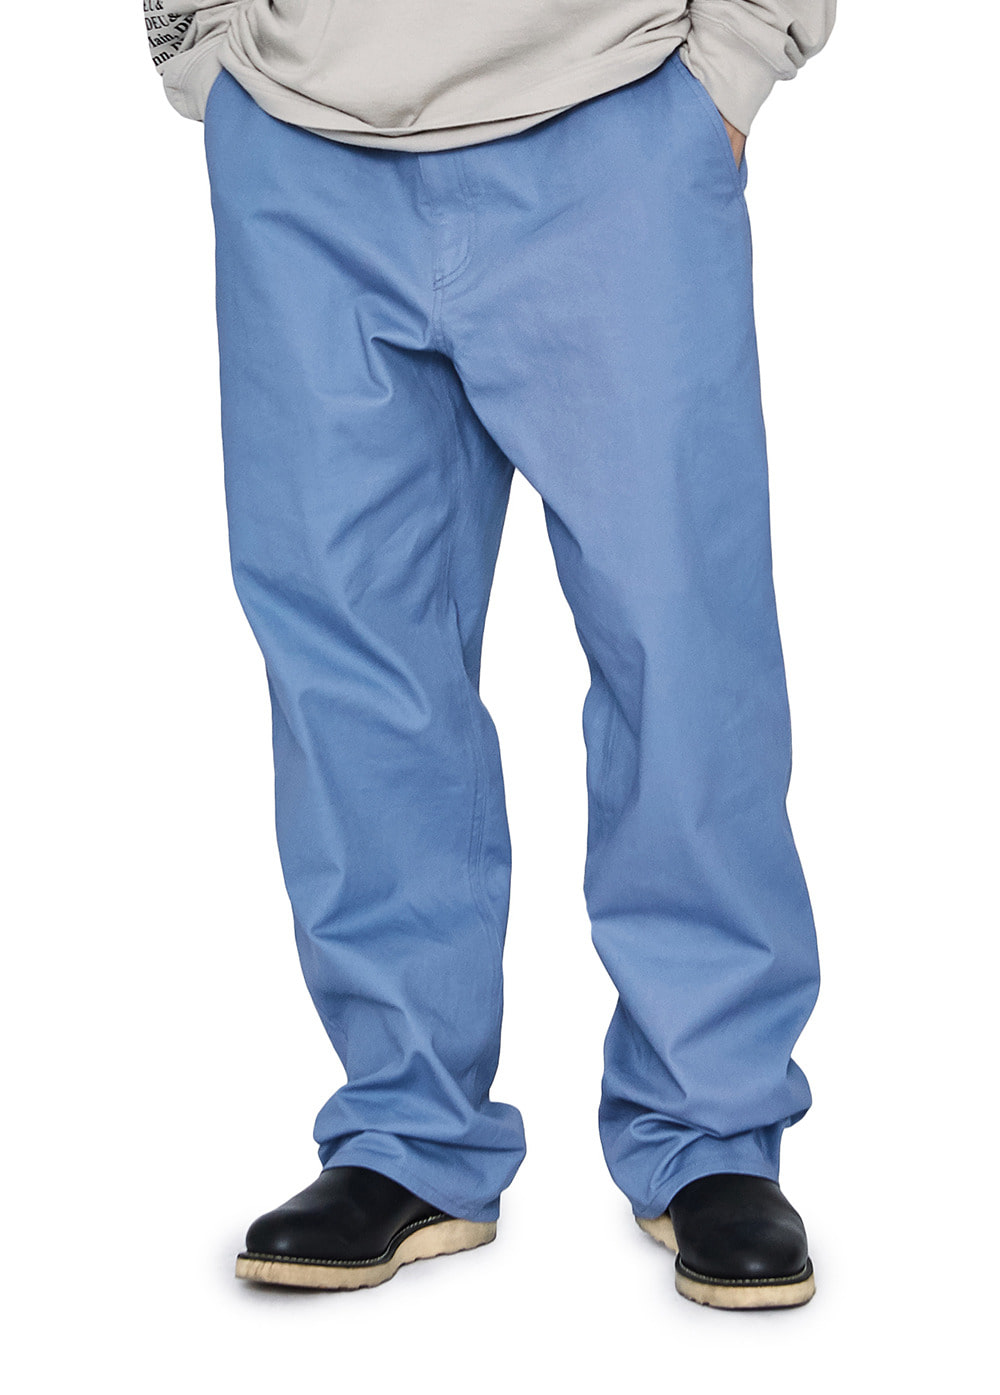 LMC BASIC FN CHINO PANTS sky blue